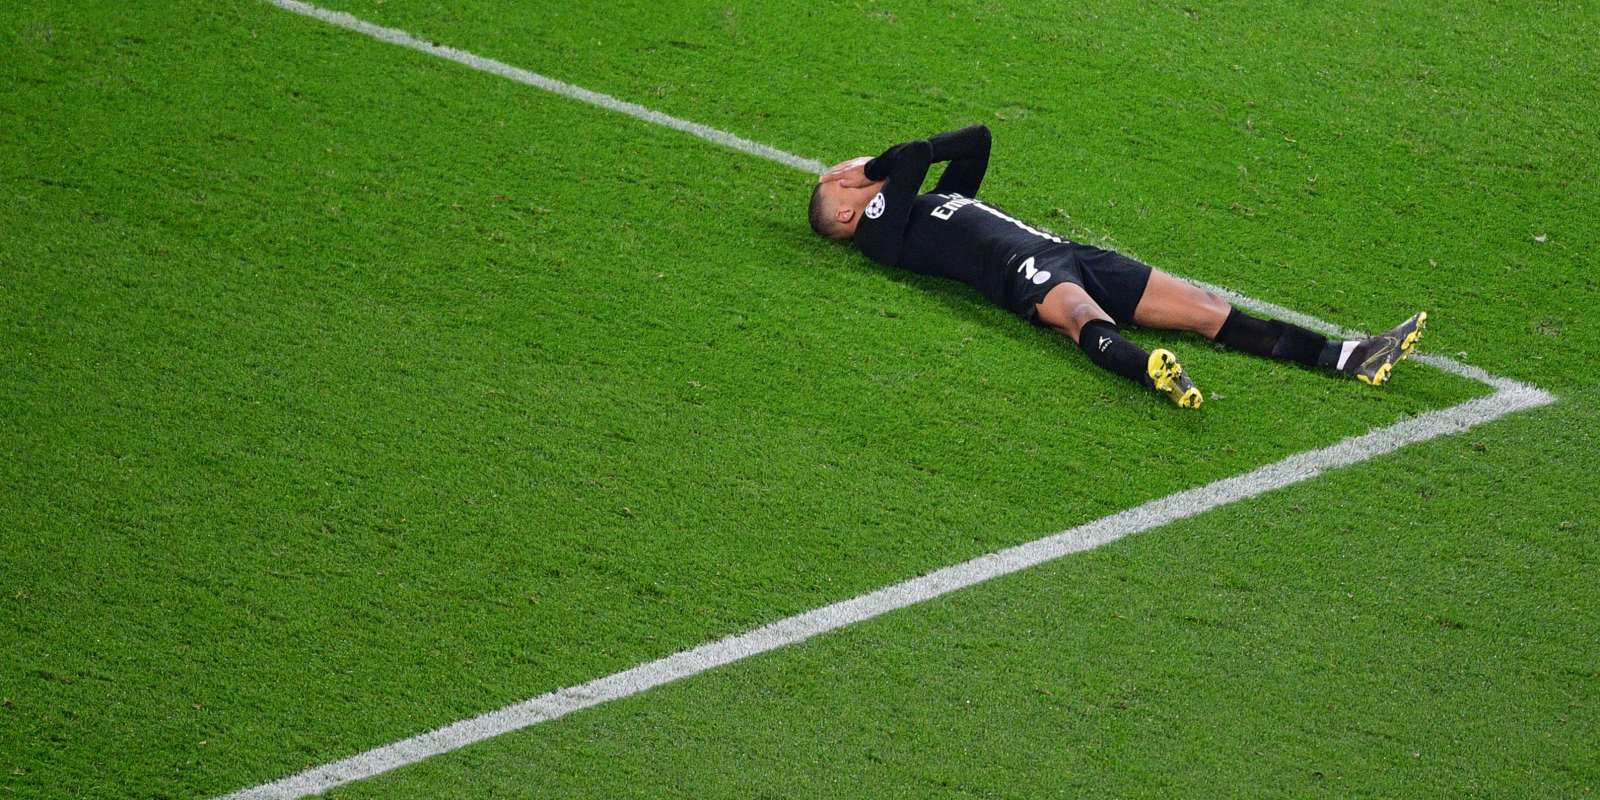 Paris Saint-Germain's French forward Kylian Mbappe reacts as he lies on the pitch at the end of the UEFA Champions League round of 16 second-leg football match between Paris Saint-Germain (PSG) and Manchester United at the Parc des Princes stadium in Paris on March 6, 2019. / AFP / Martin BUREAU